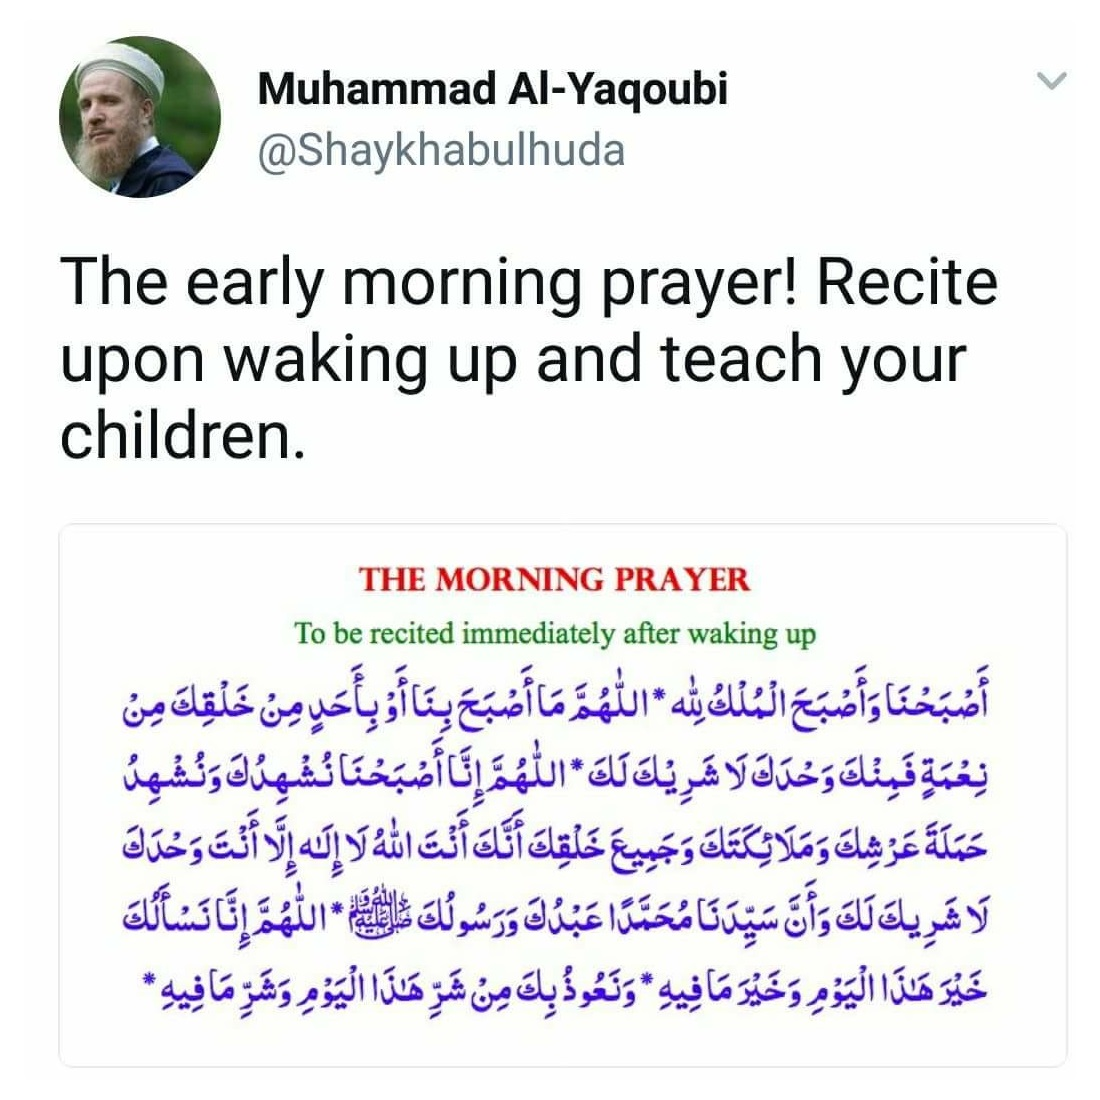 http://damas.nur.nu/wp-content/uploads/sites/8/2018/10/Early-morrning-prayer_Sh-Muhammad-al-Yaqoubi-1.jpg